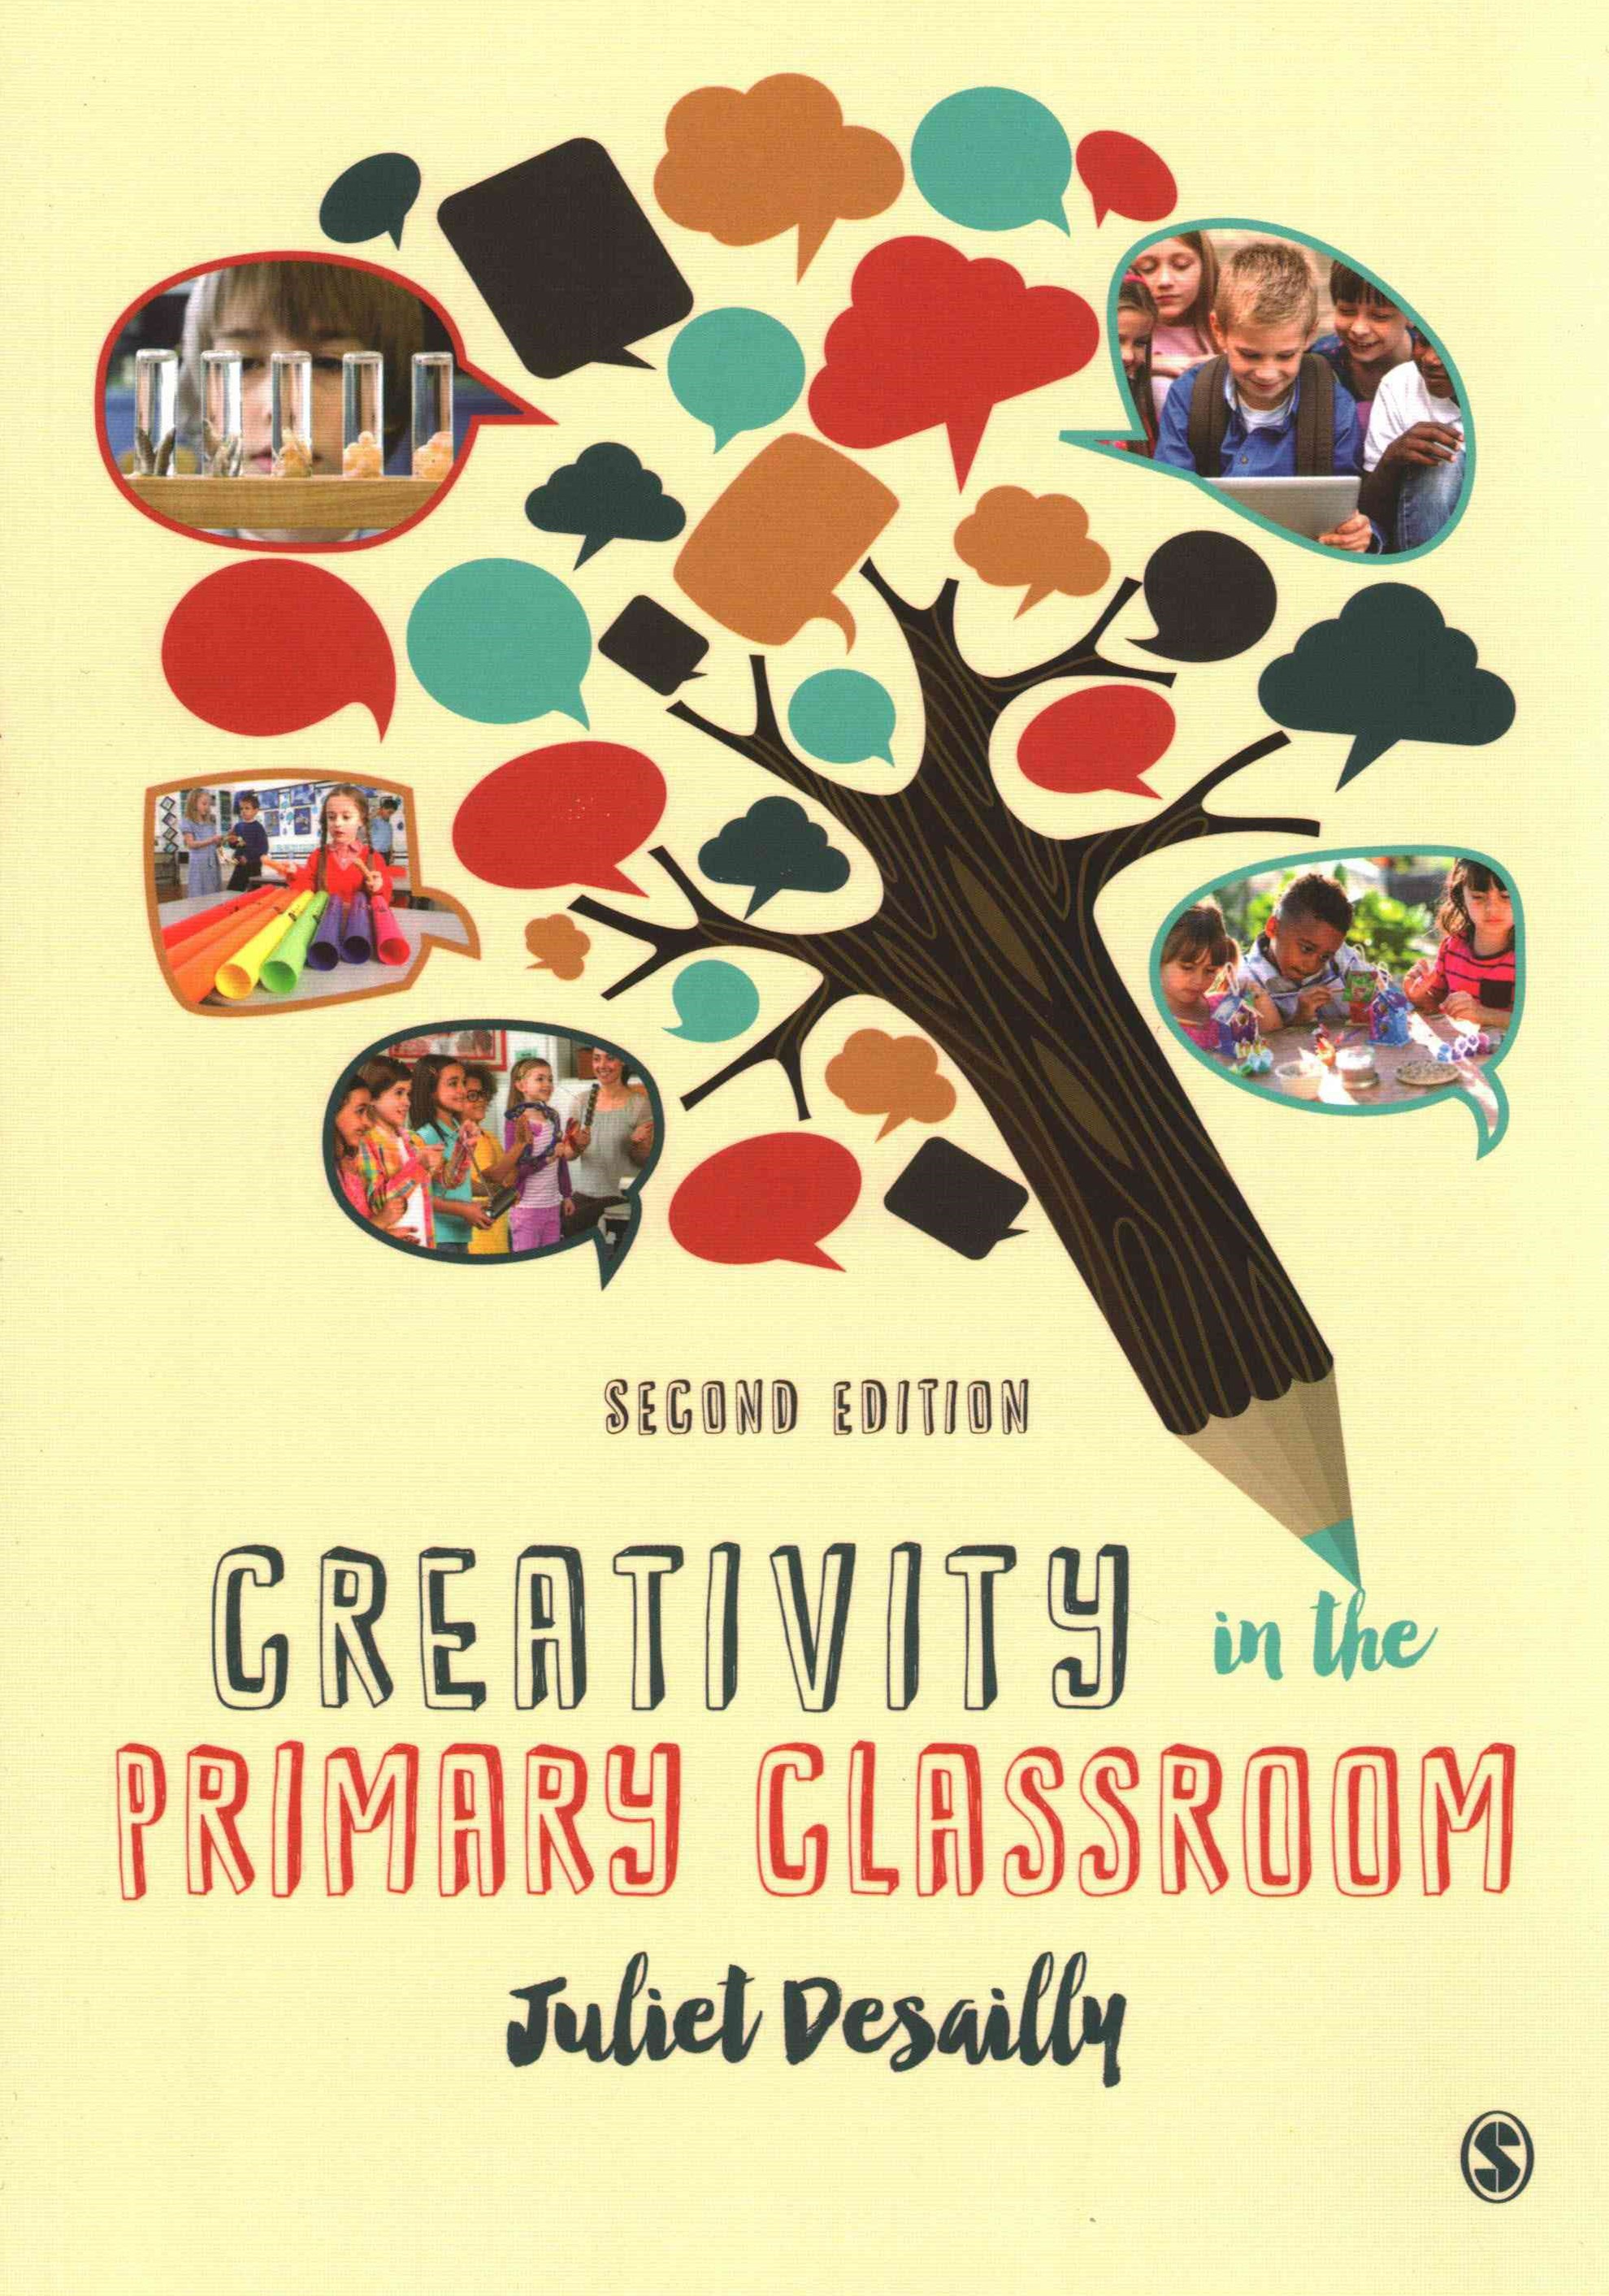 Creativity in the Primary Classroom